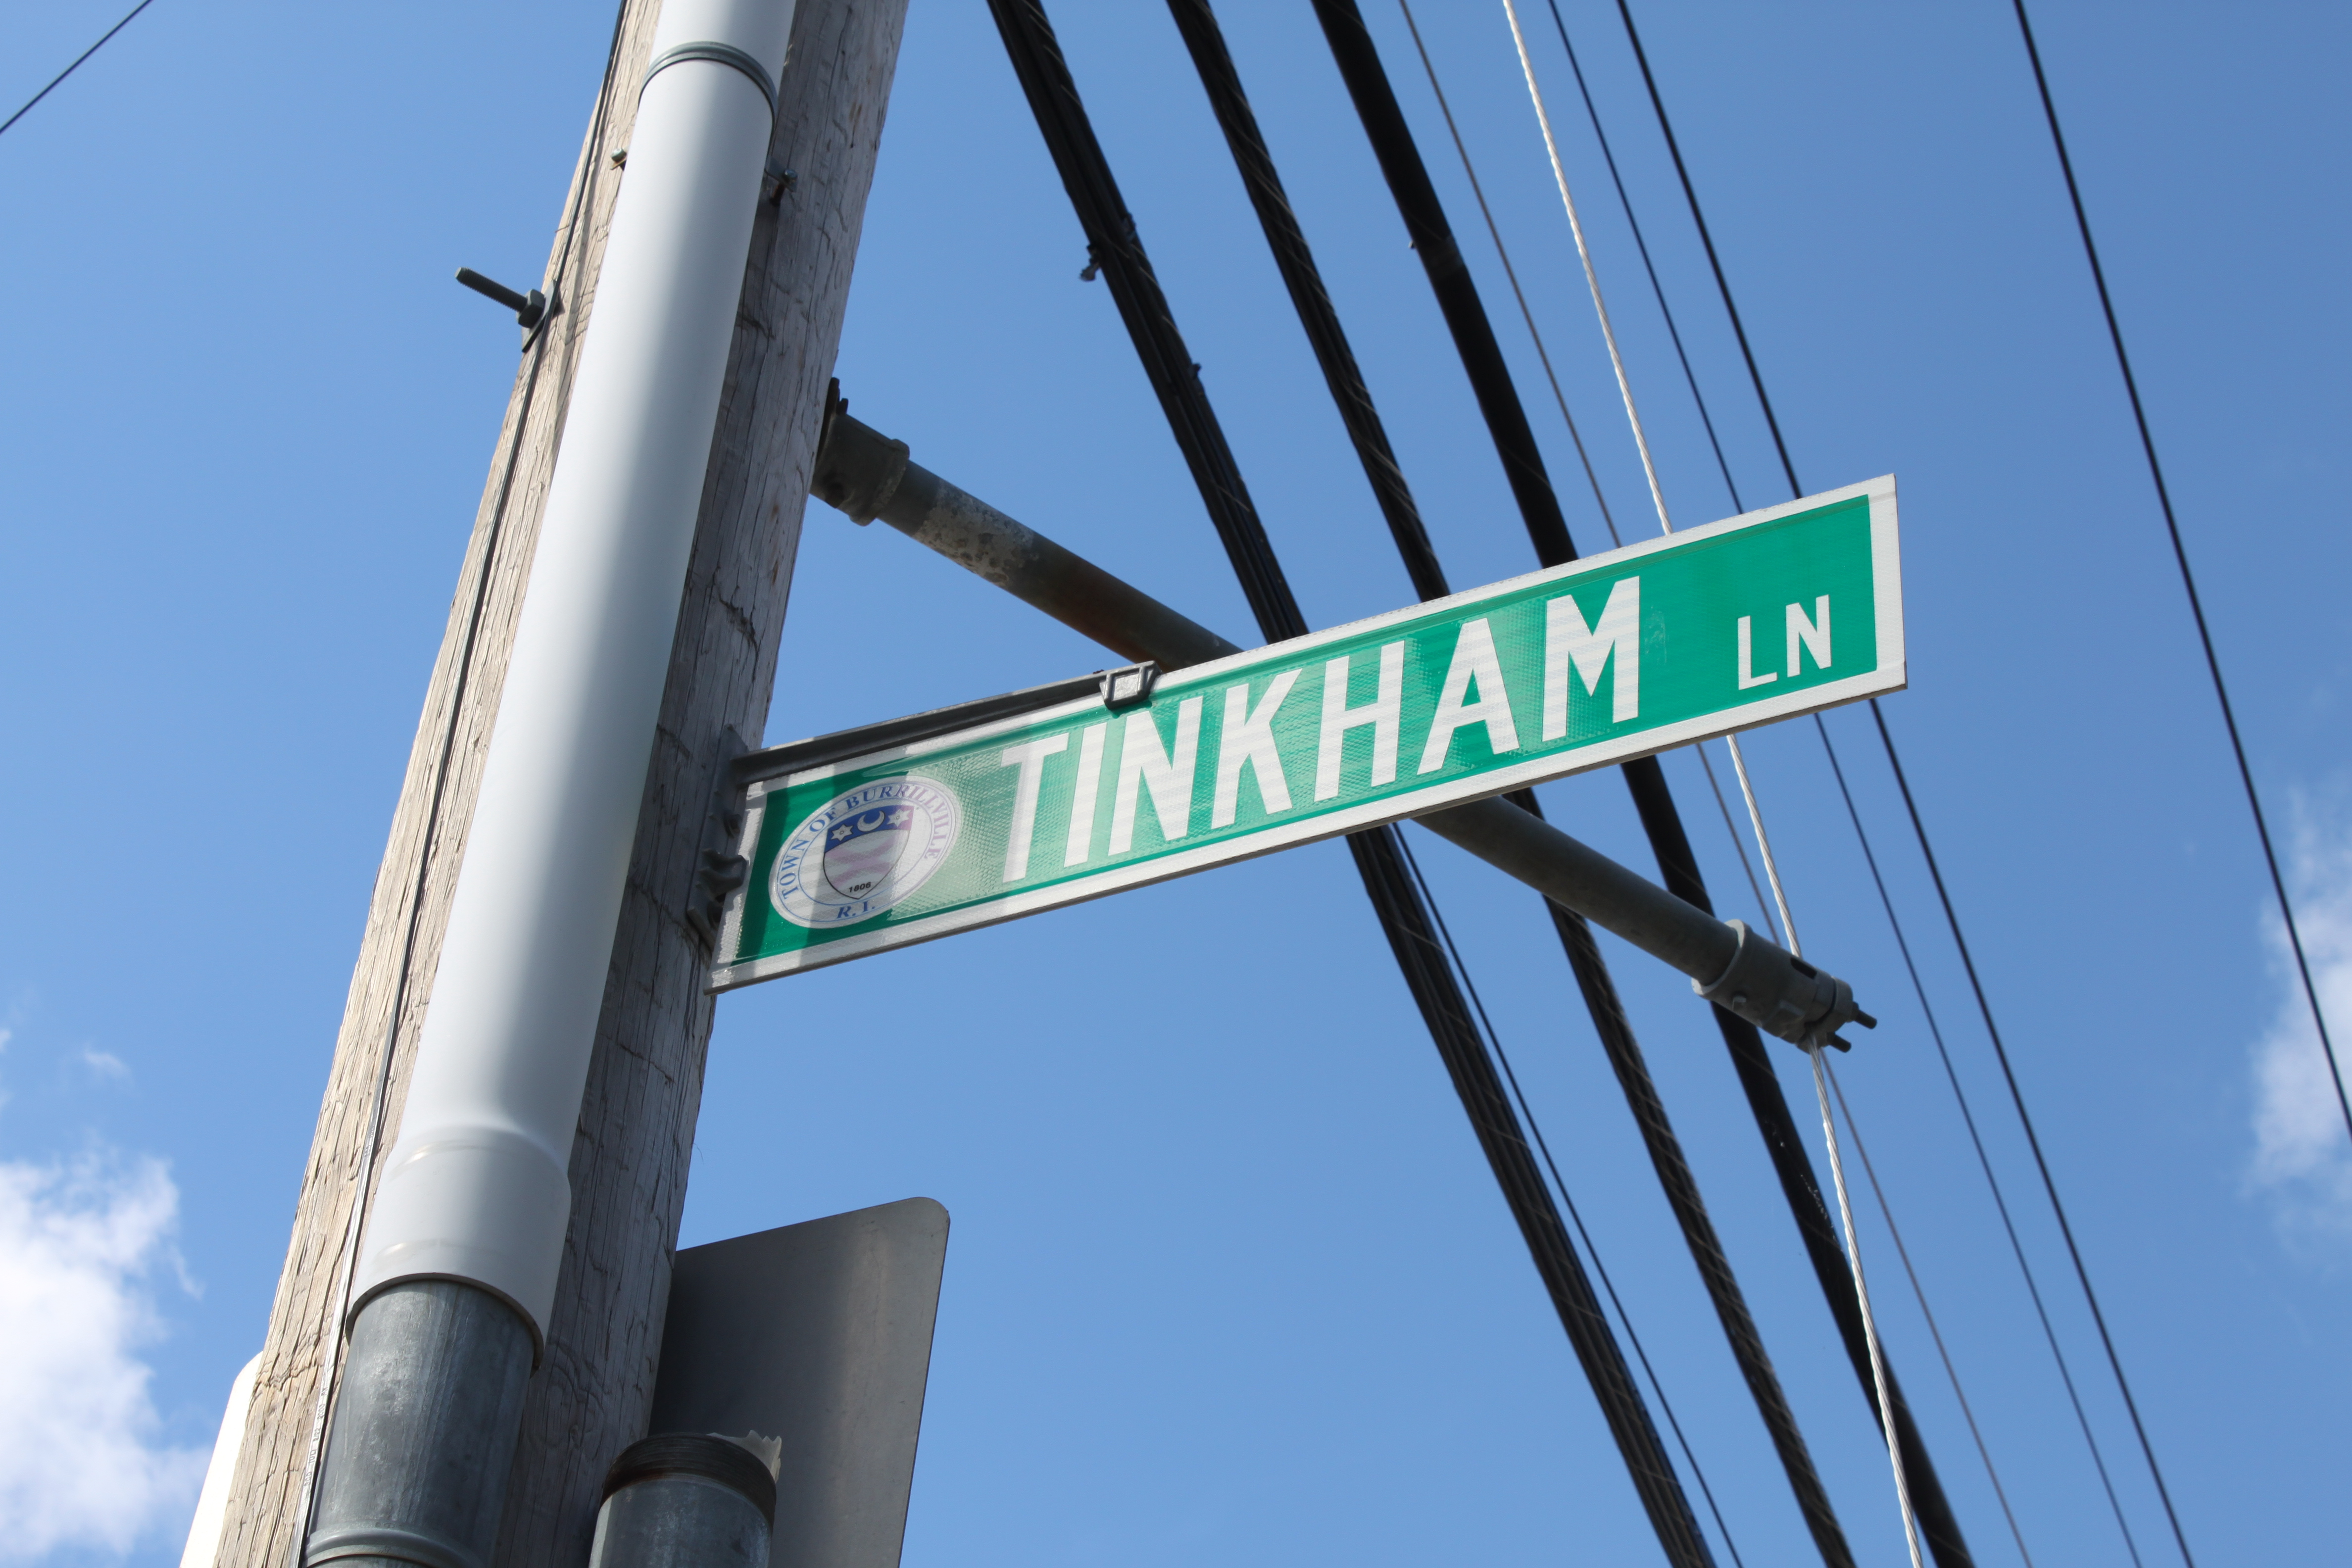 Tinkham Lane, named for William Tinkham, a mill owner, runs from the Clocktower apartments, through the parking lot, and meets Main St.